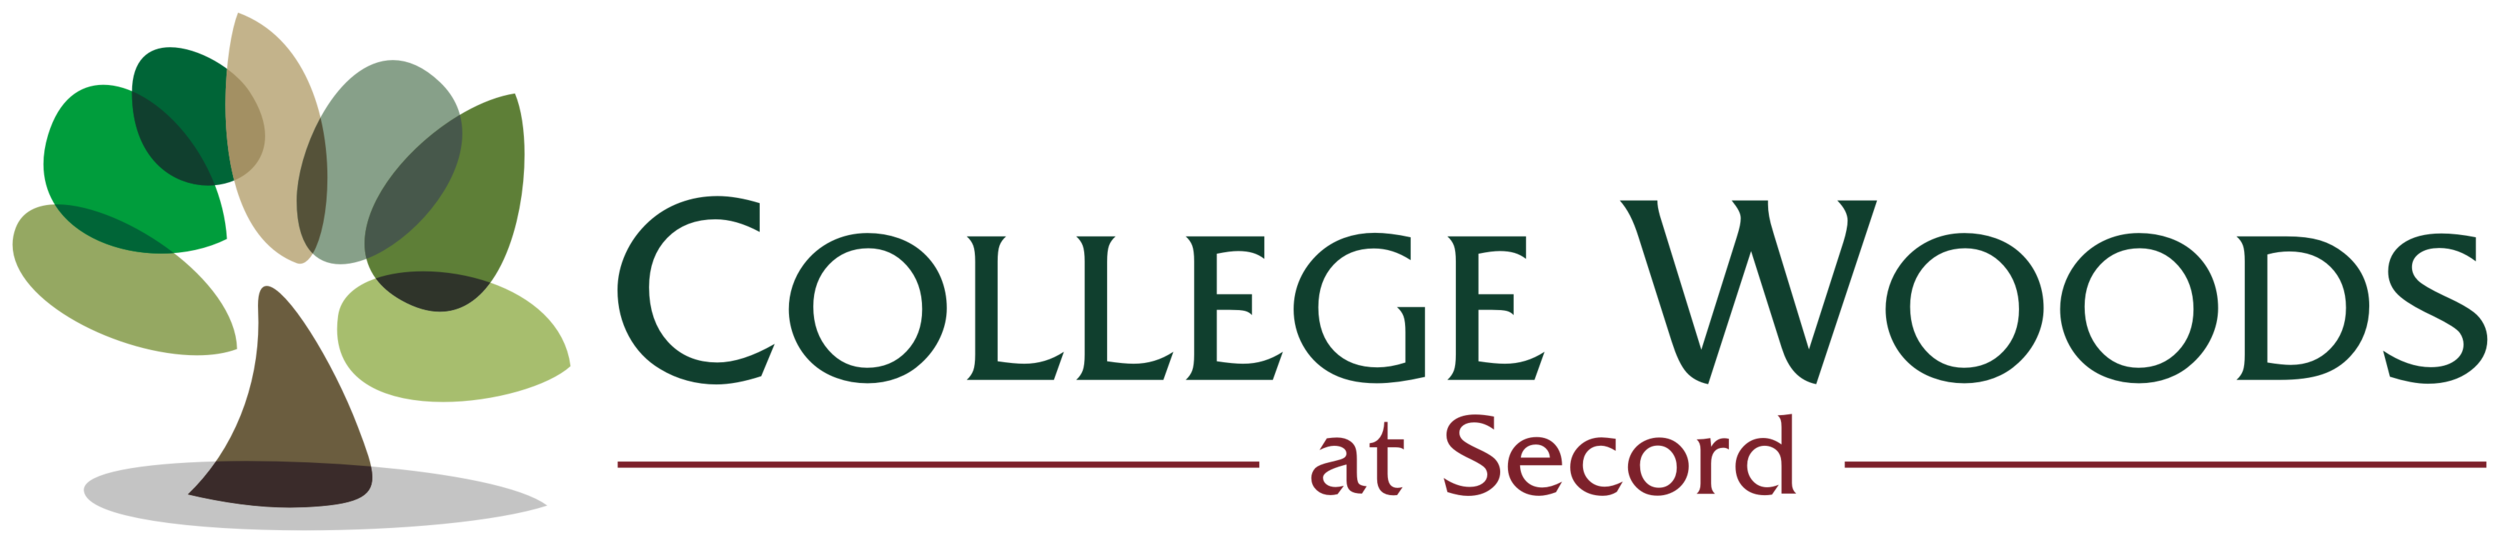 College_Woods_Secord_logo.png